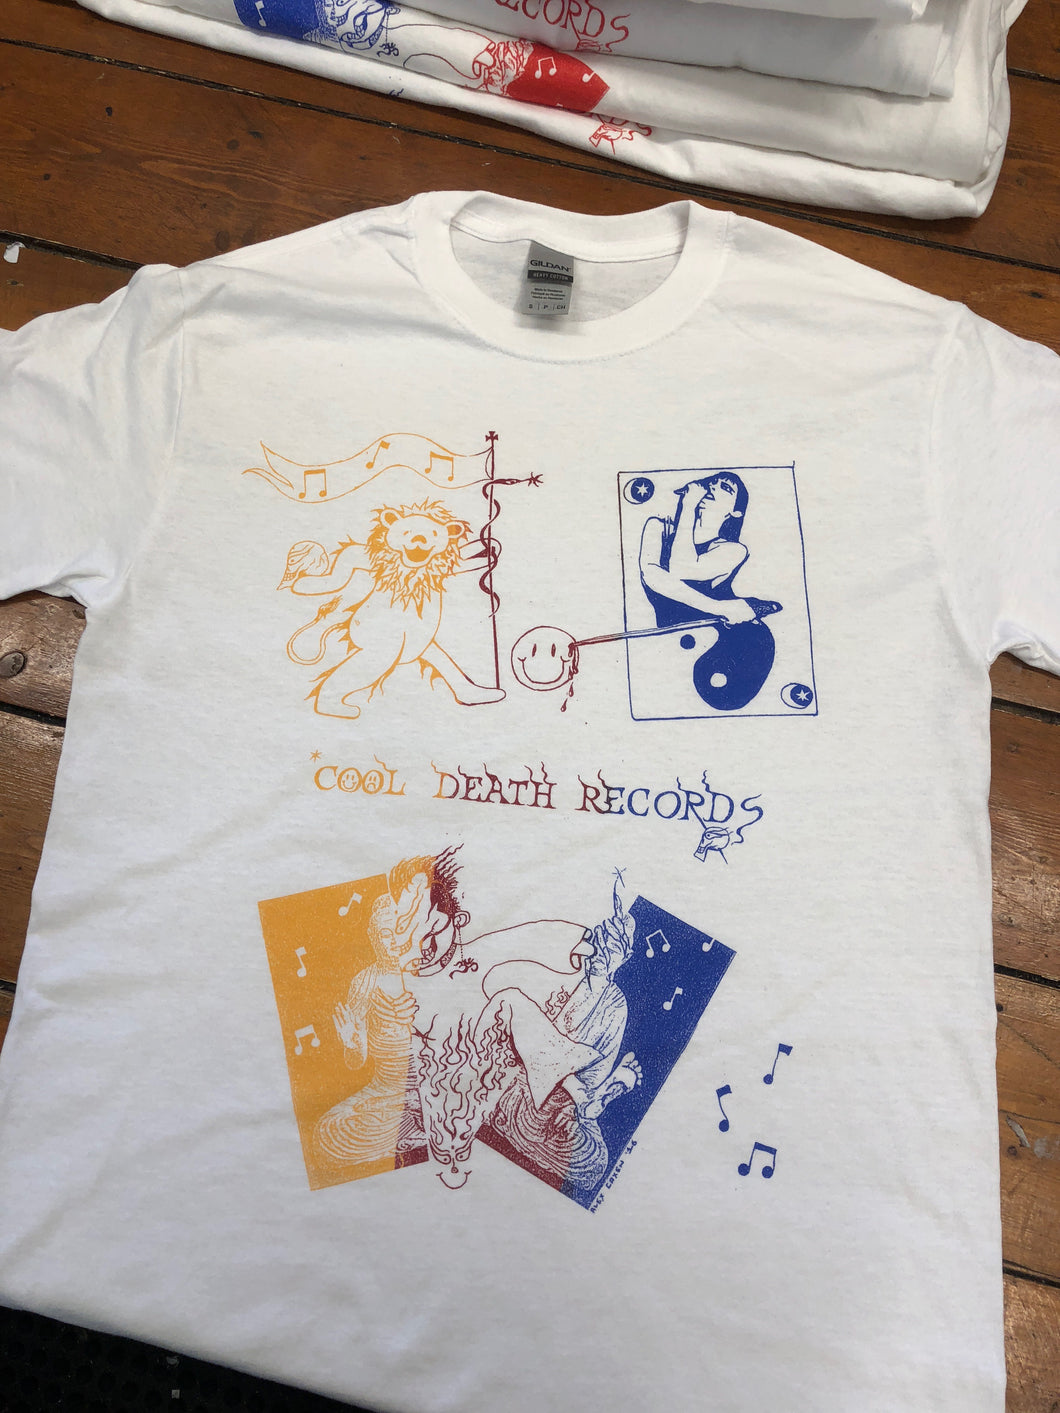 COOL DEATH SHIRT - YELLOW/MAROON/BLUE ON WHITE